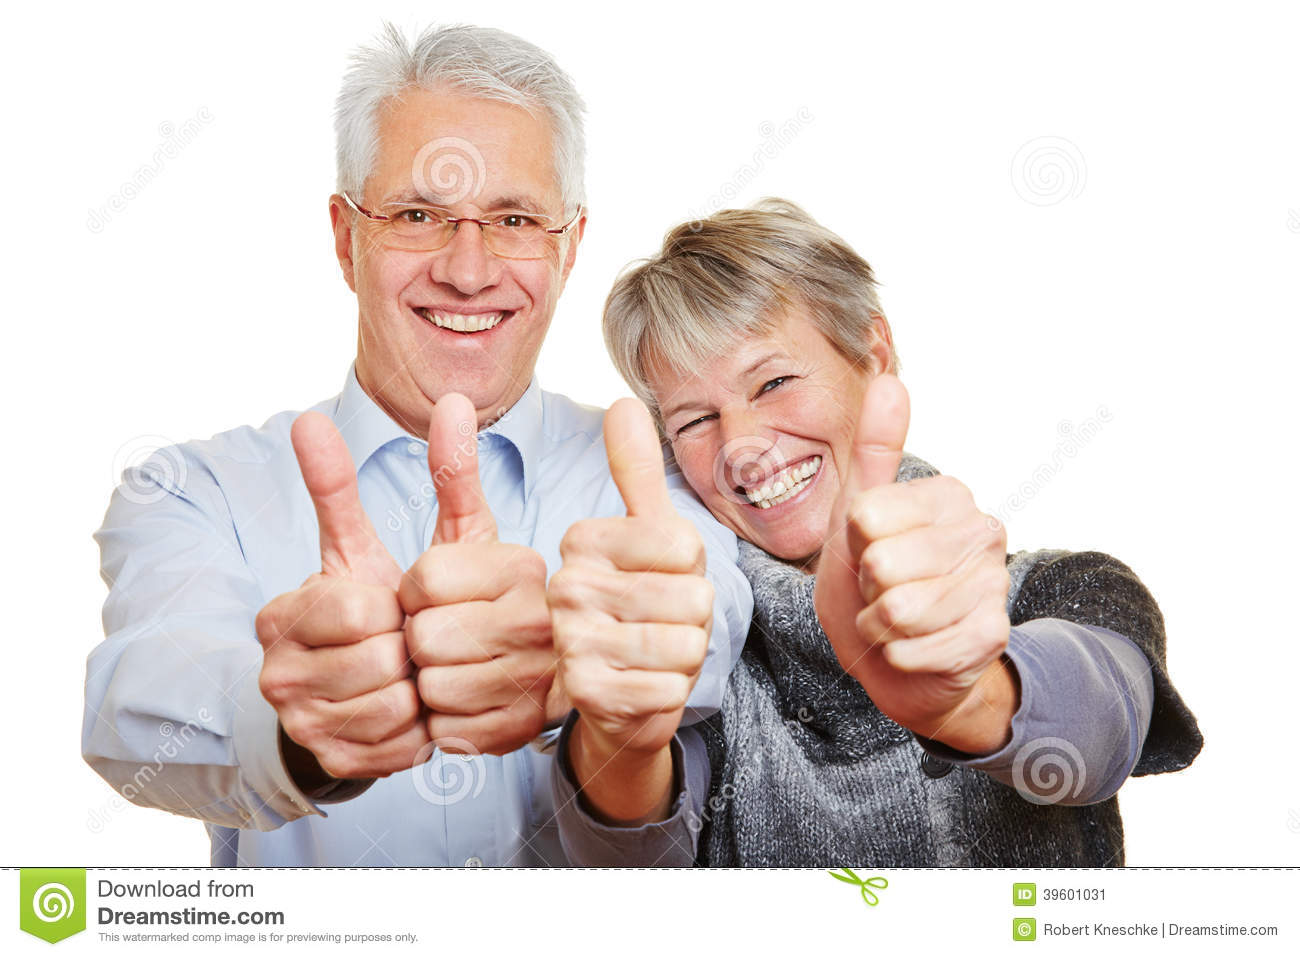 Couple thumbs images 76